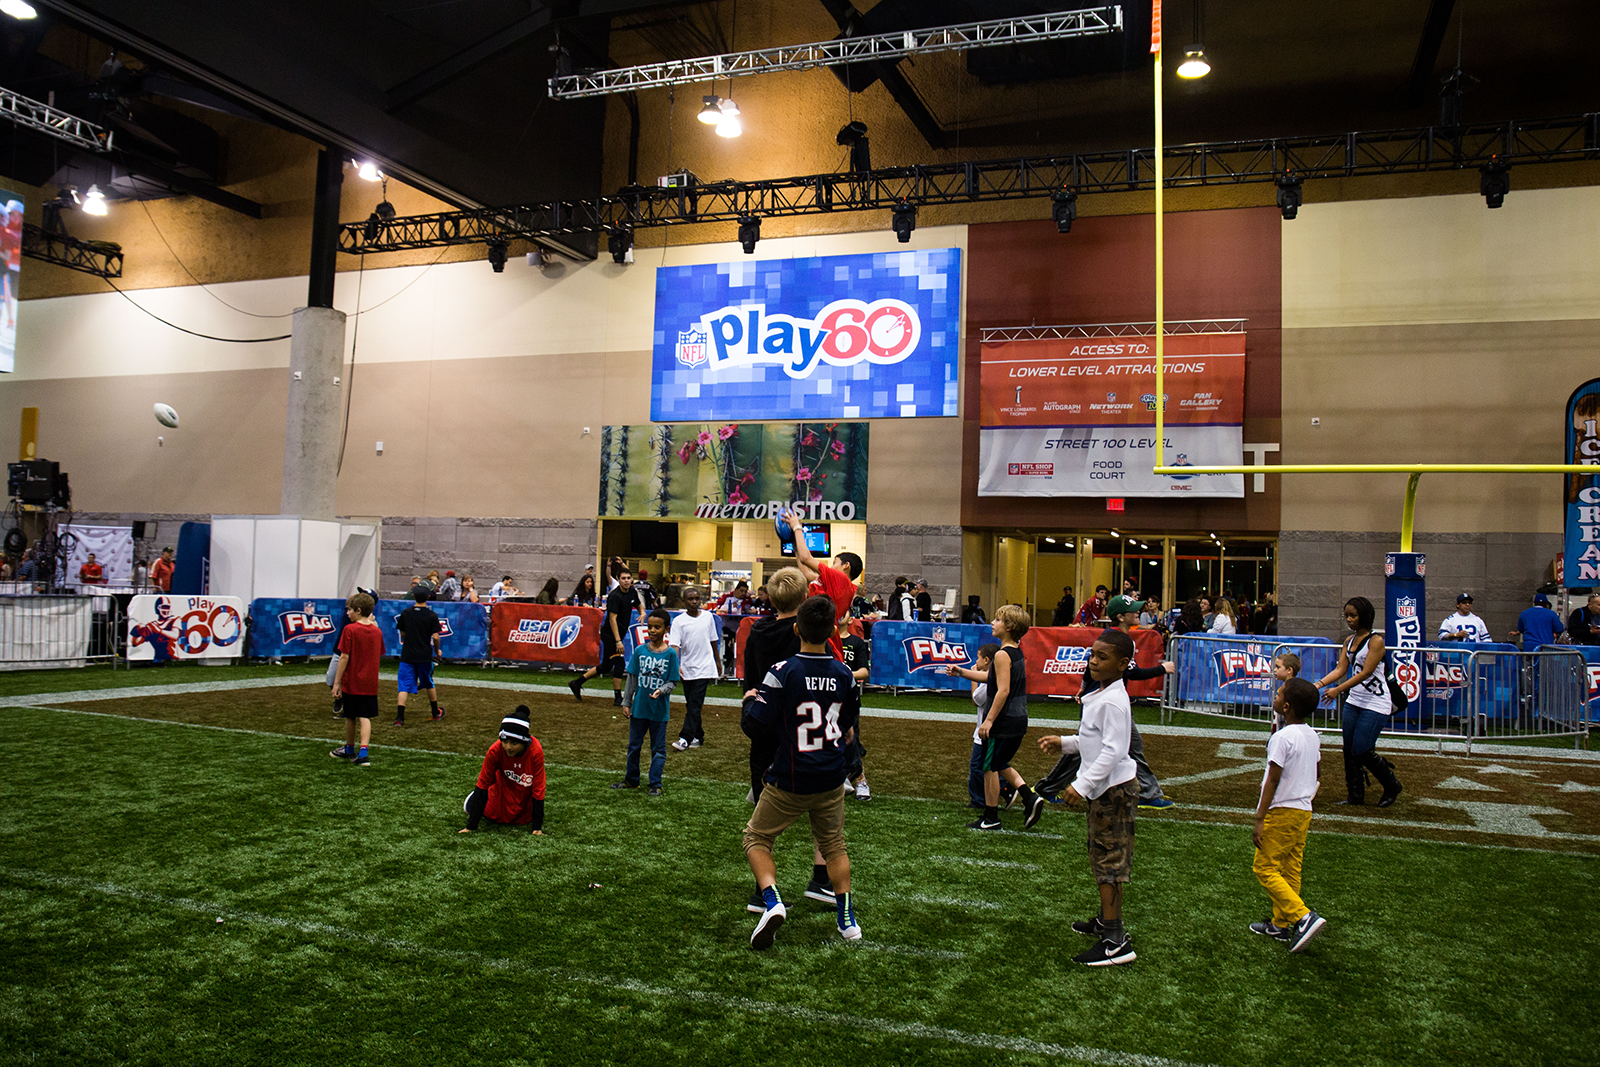 NFL Experience - SF Bay Super Bowl 50 Party